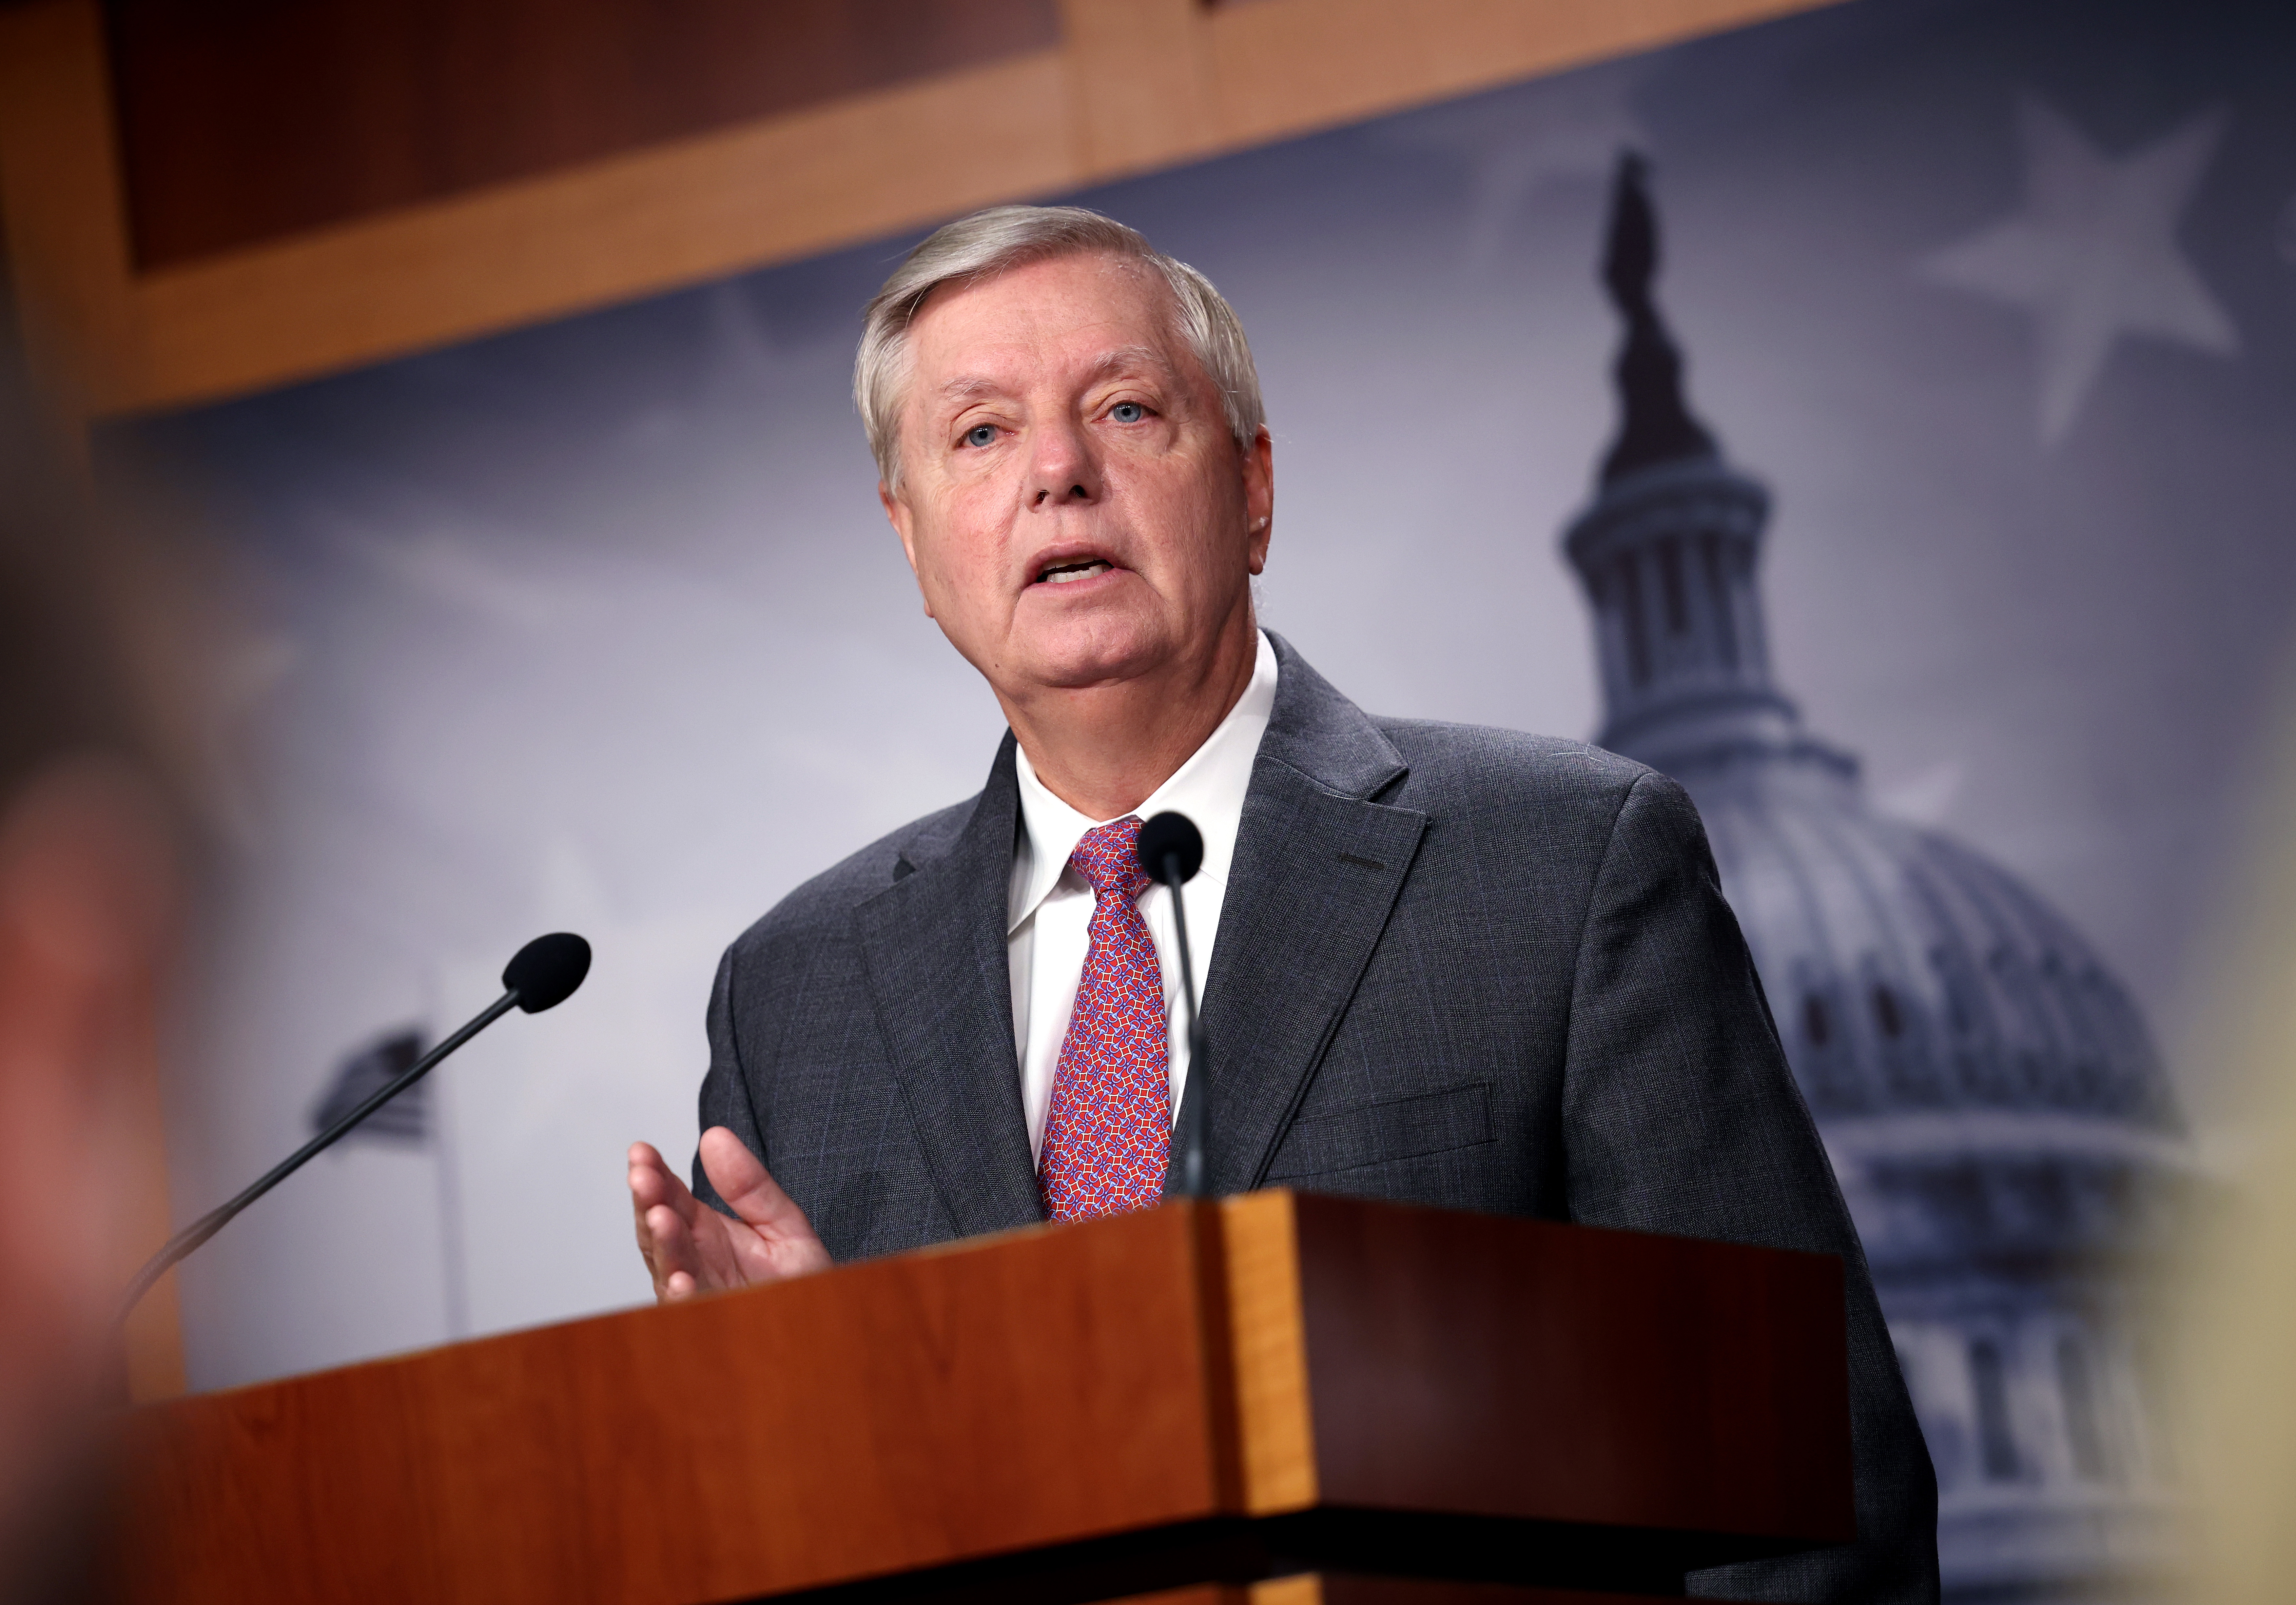 Sen. Lindsey Graham (R-S.C.) at the U.S. Capitol in Washington, DC. (Photo by Kevin Dietsch/Getty Images)